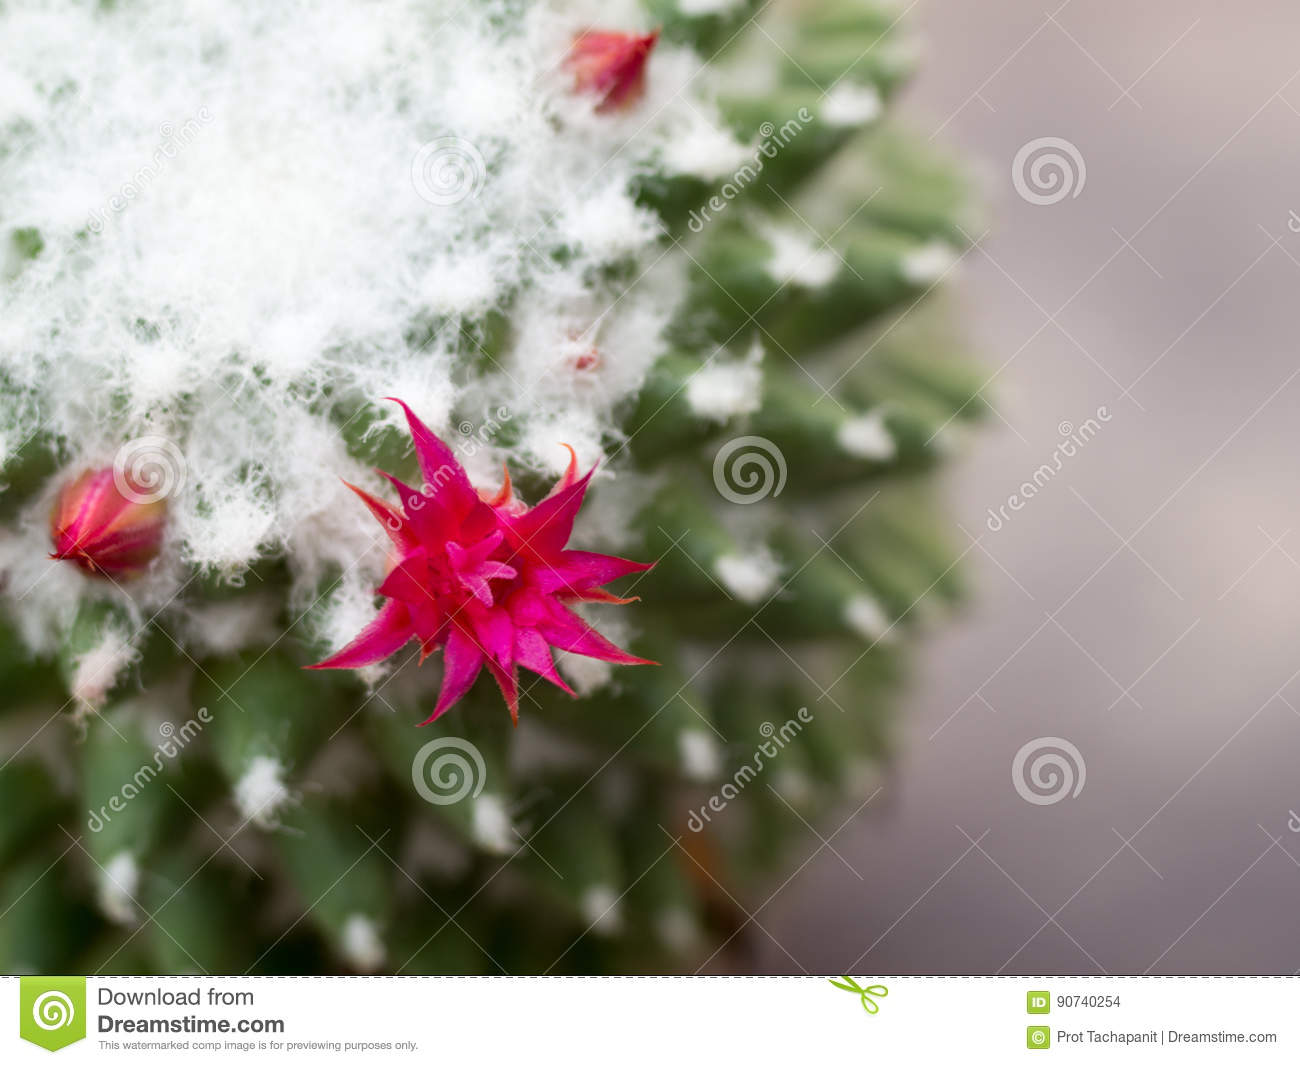 The Flowers Of The Pink Cactus Are On The Tree Stock Photo Image